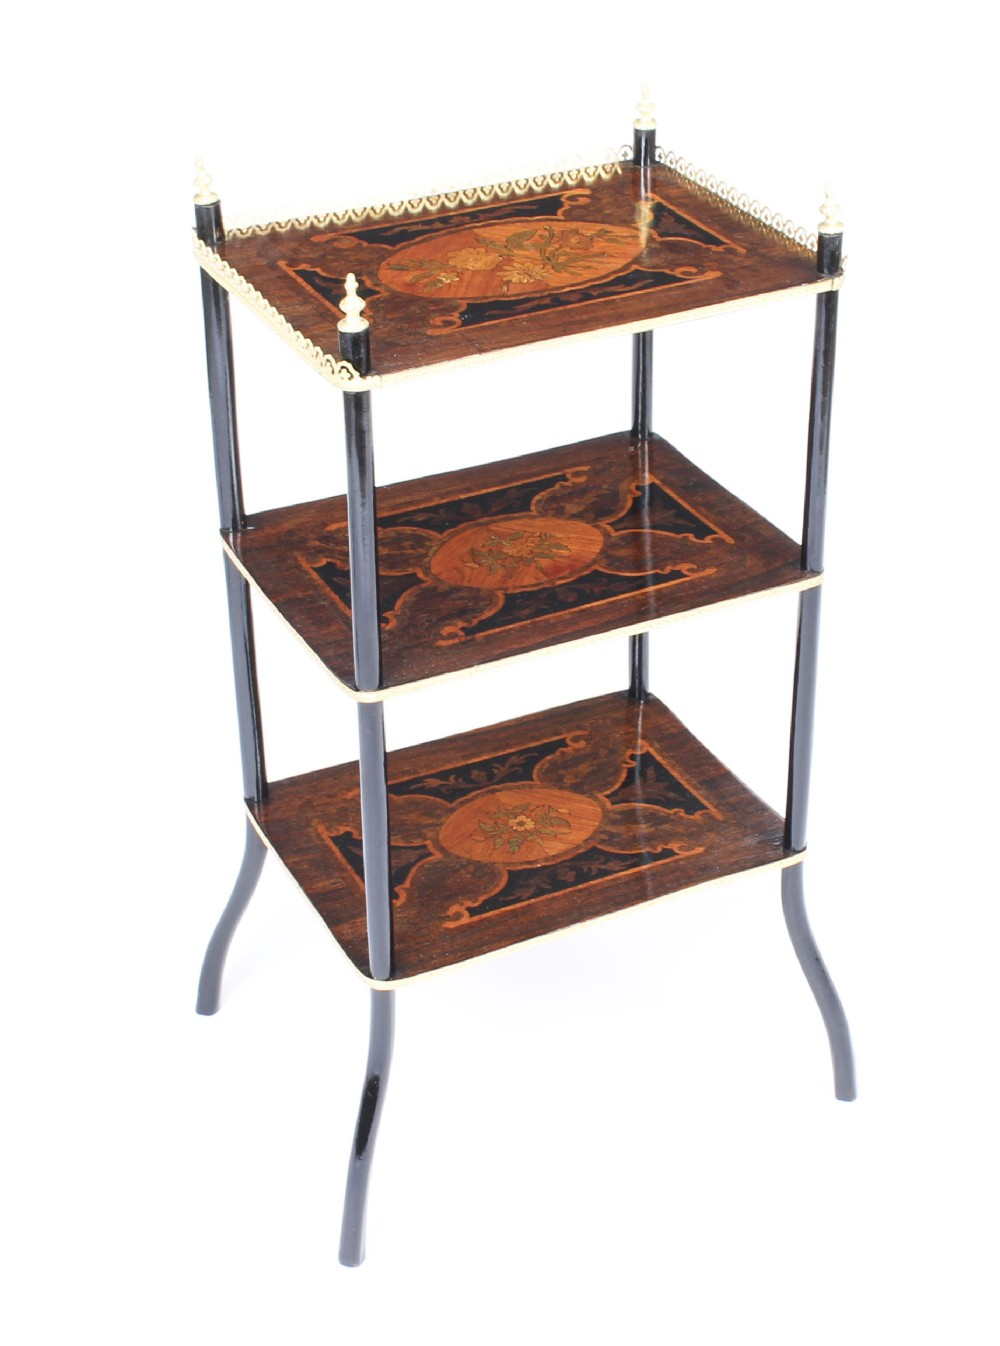 antique french marquetry ormolu threetier etagere table c1860